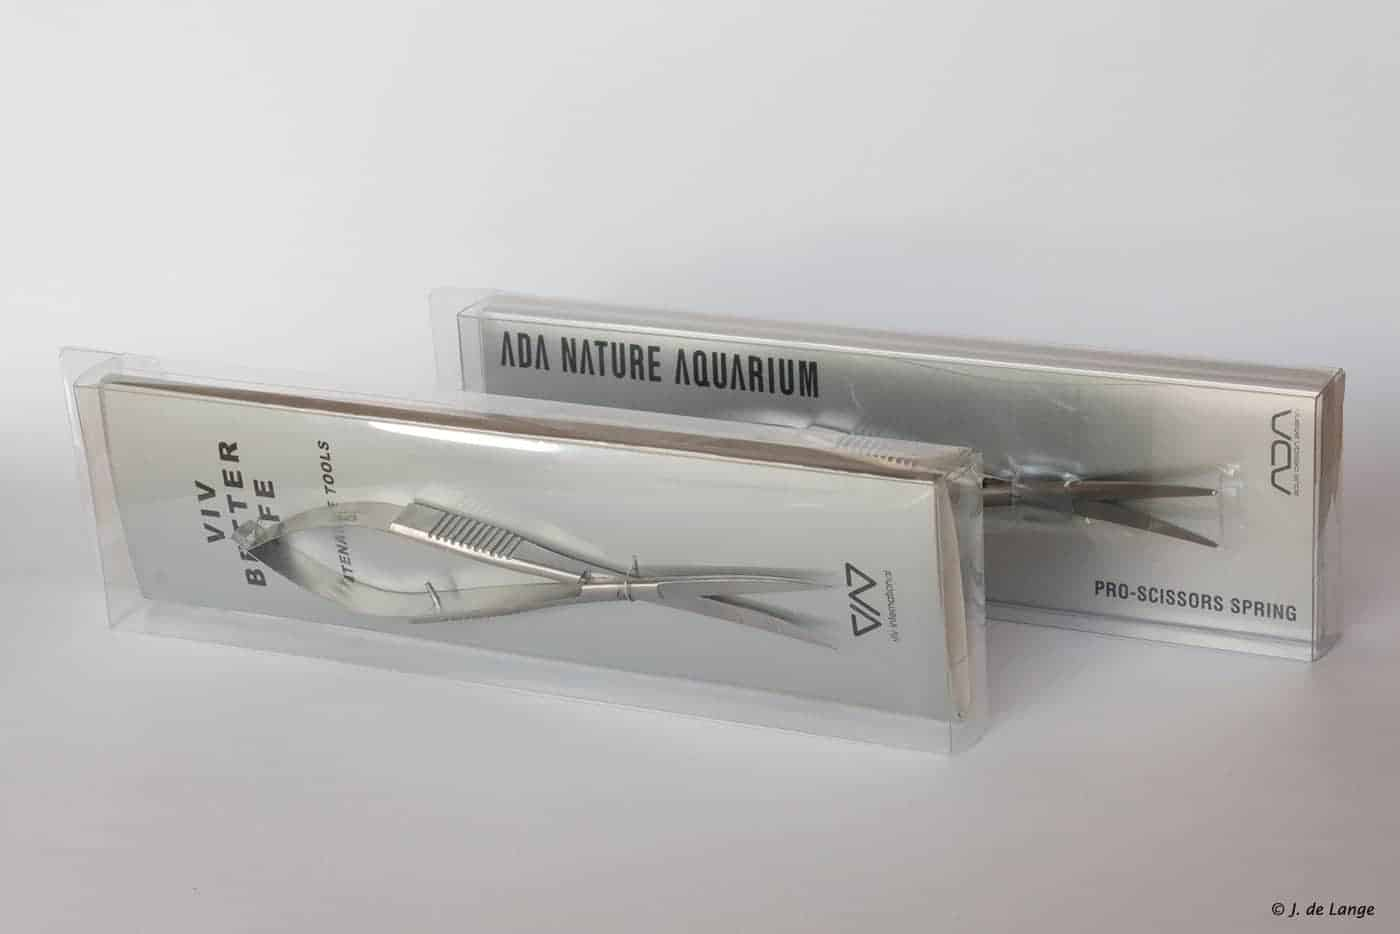 ADA and ViV scissors in their packaging